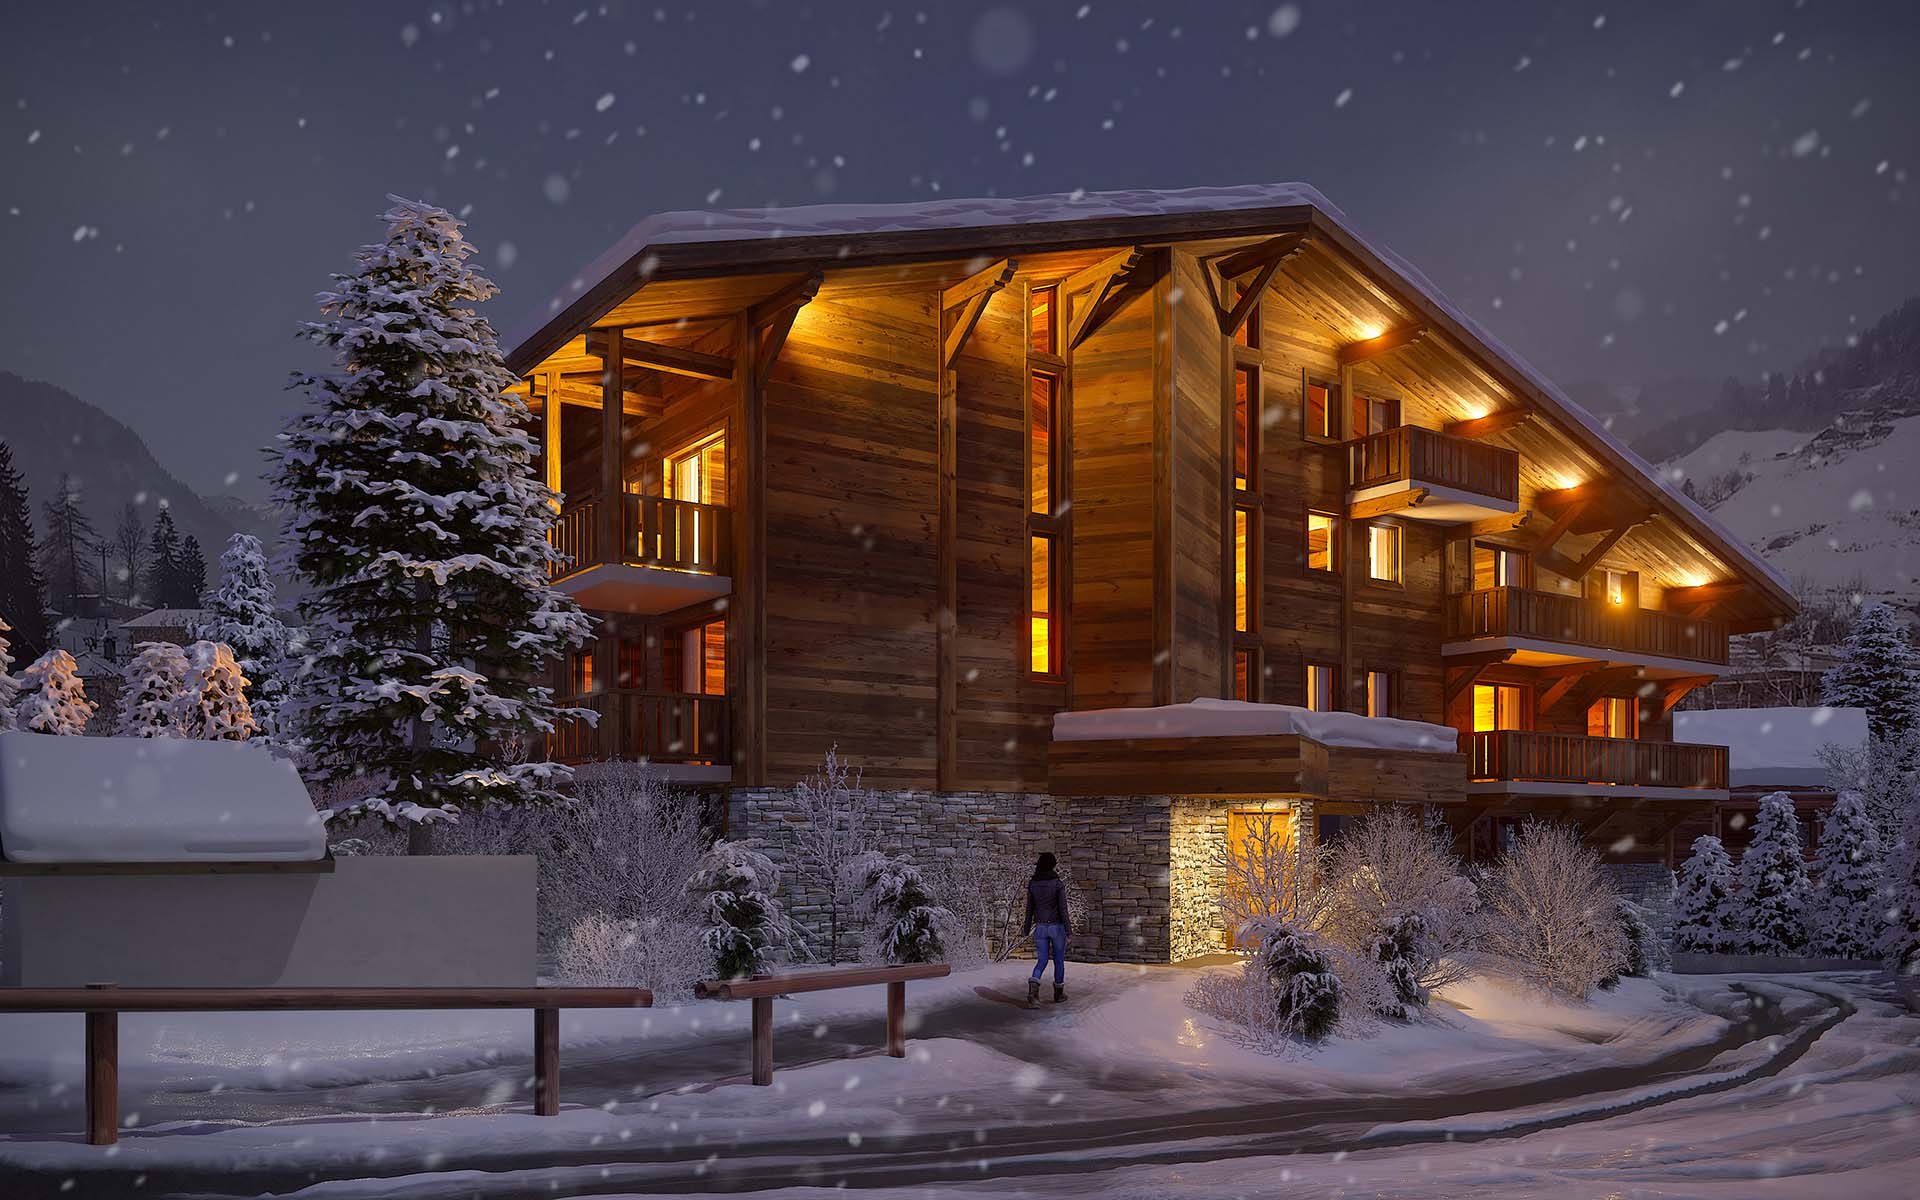 3D Perspective of a luxurious chalet created by the 3D studio Valentin Studio.